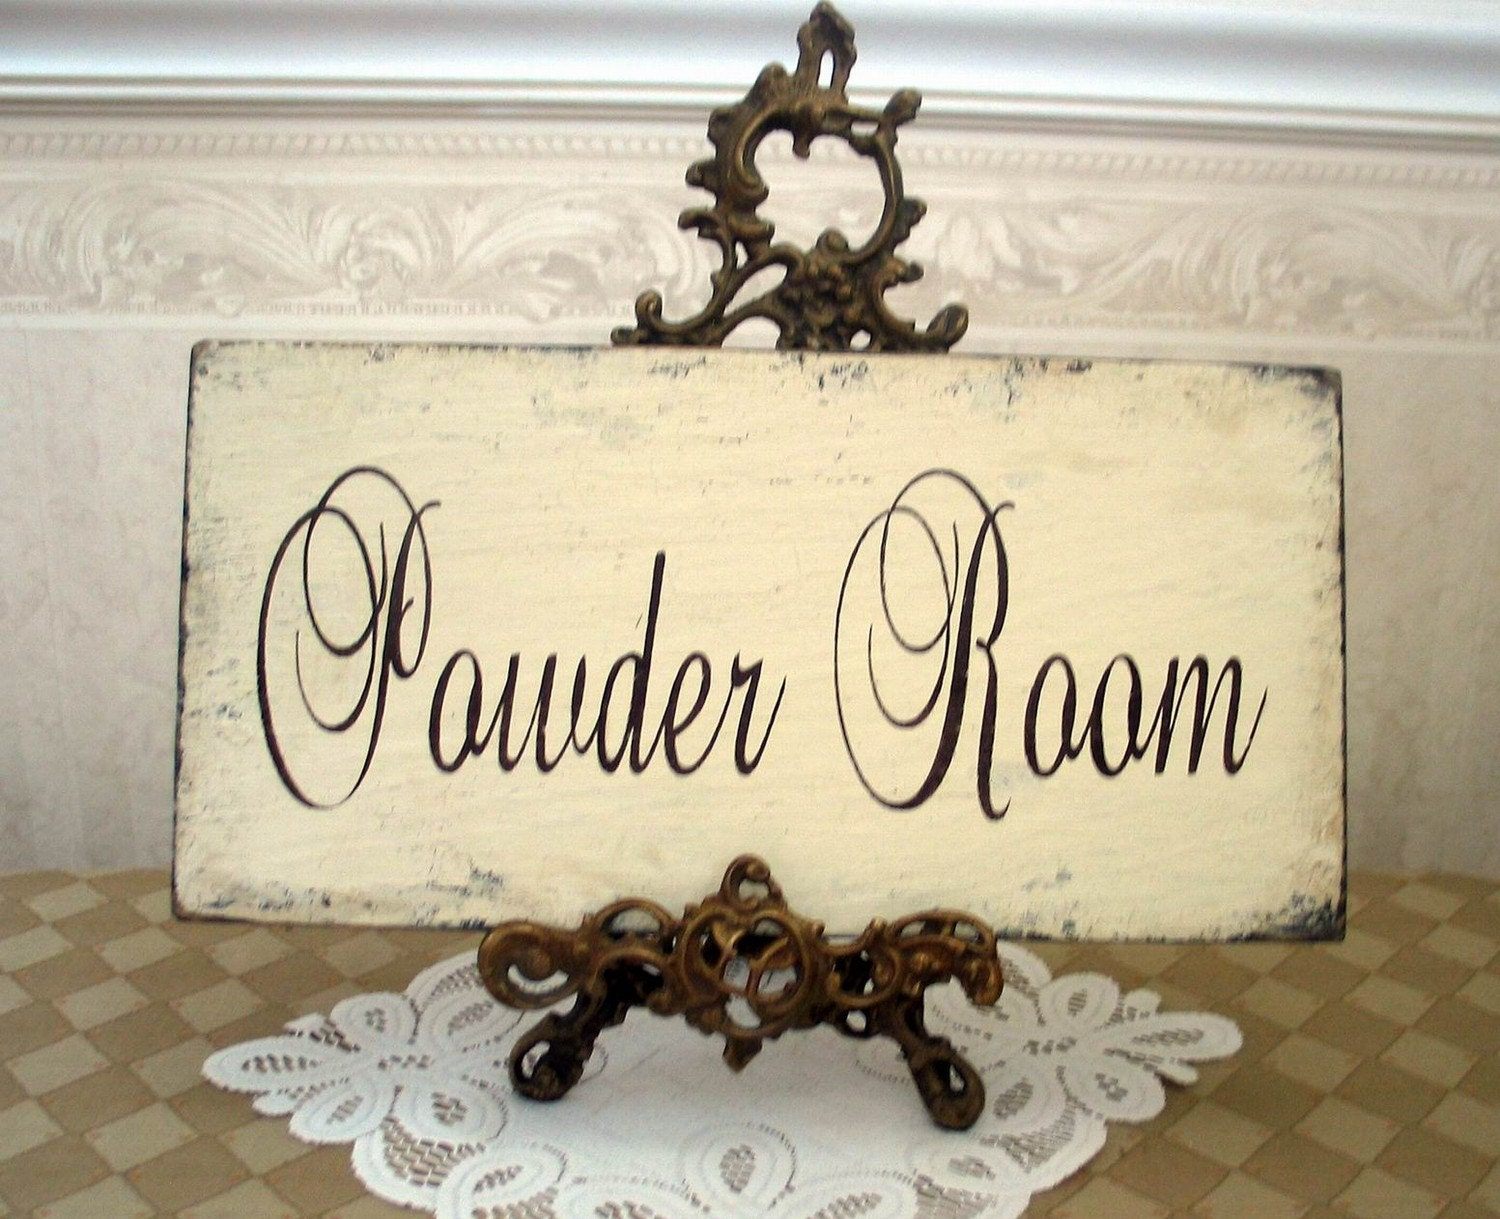 Powder Room Bath Shabby Cottage Vintage Style Sign. Gif End Signs. Urine Signs. Wedding Reception Signs Of Stroke. Strong Signs. Logo Nba Signs Of Stroke. Drama Signs Of Stroke. Hospital Premise Signs Of Stroke. Leg Signs